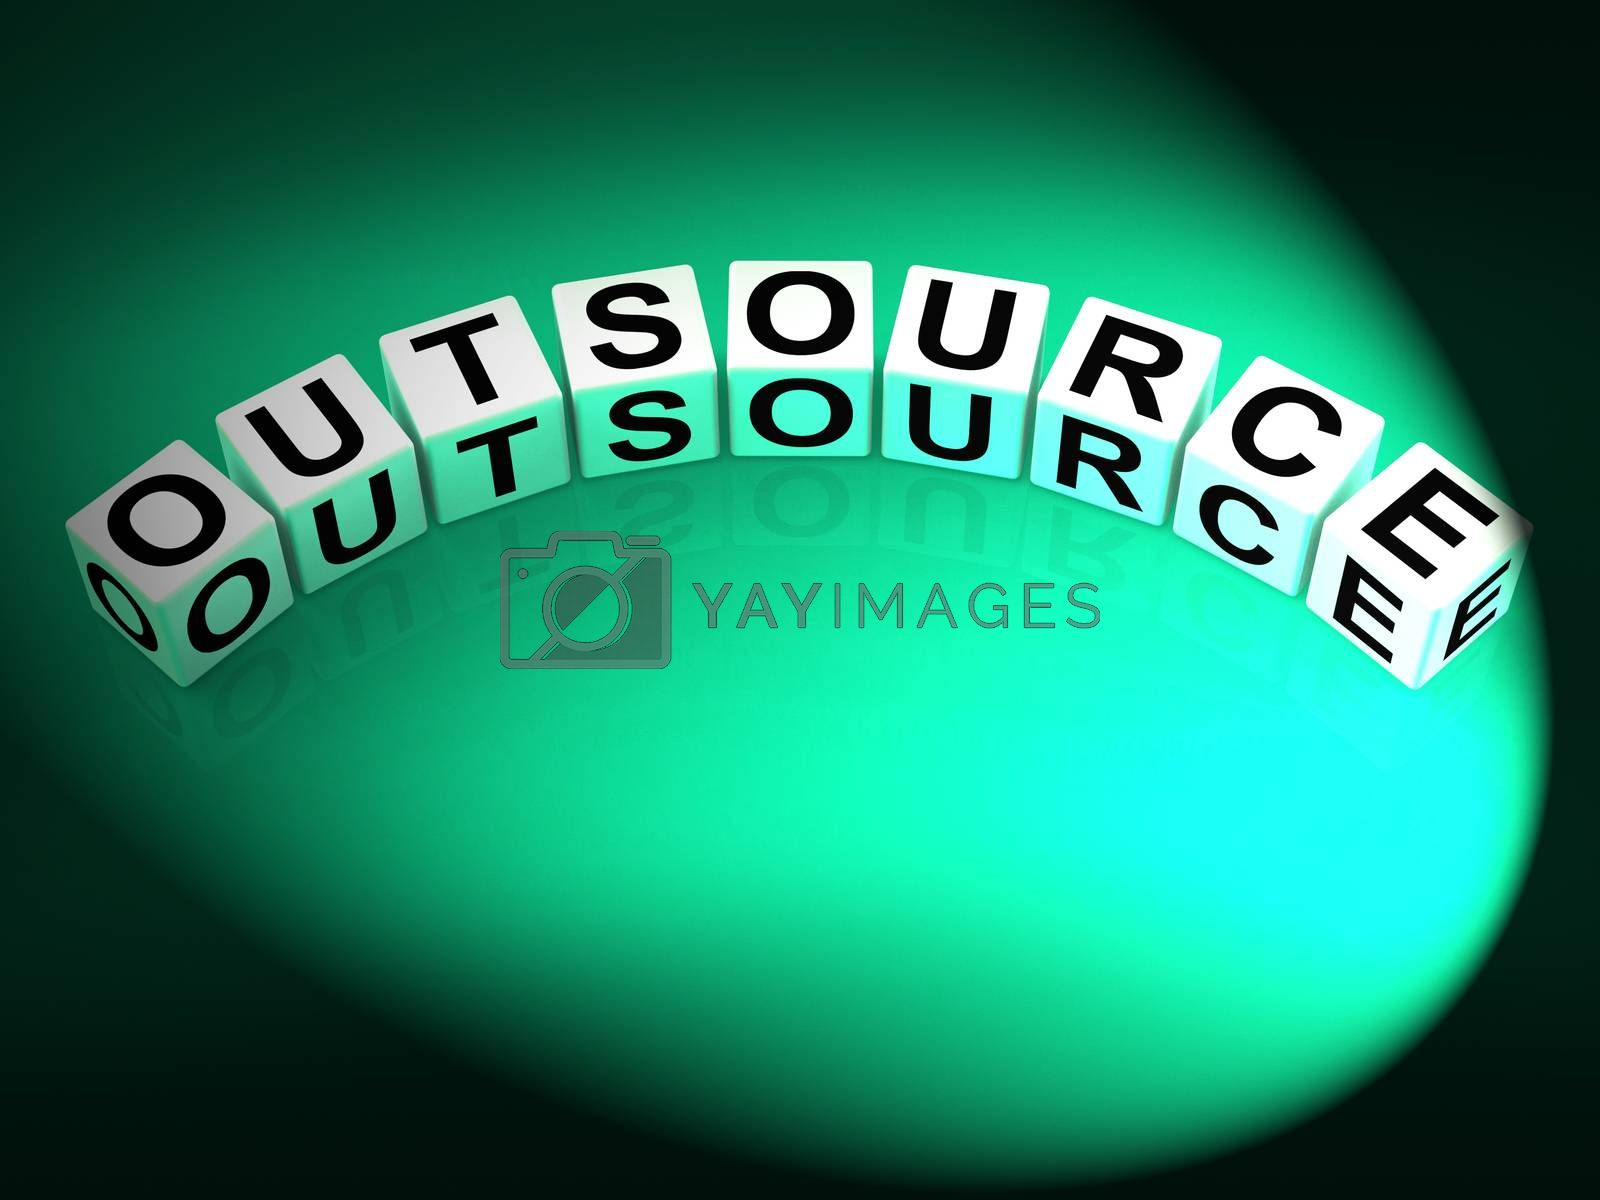 Outsource Dice Show Outsourcing and Contracting Employment by stuartmiles